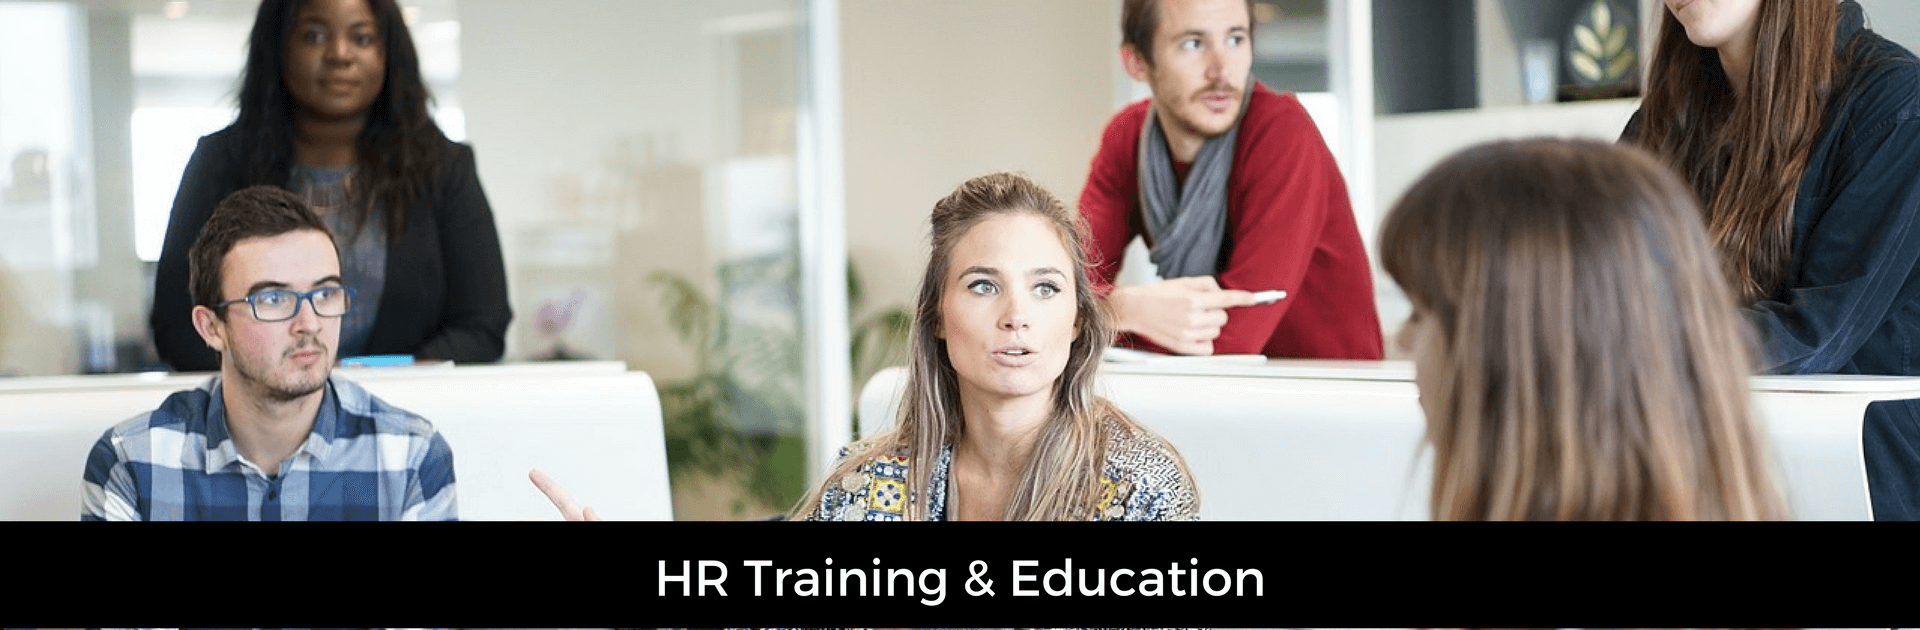 Picture captioned HR Training & Education. Background image of a team meeting or training session